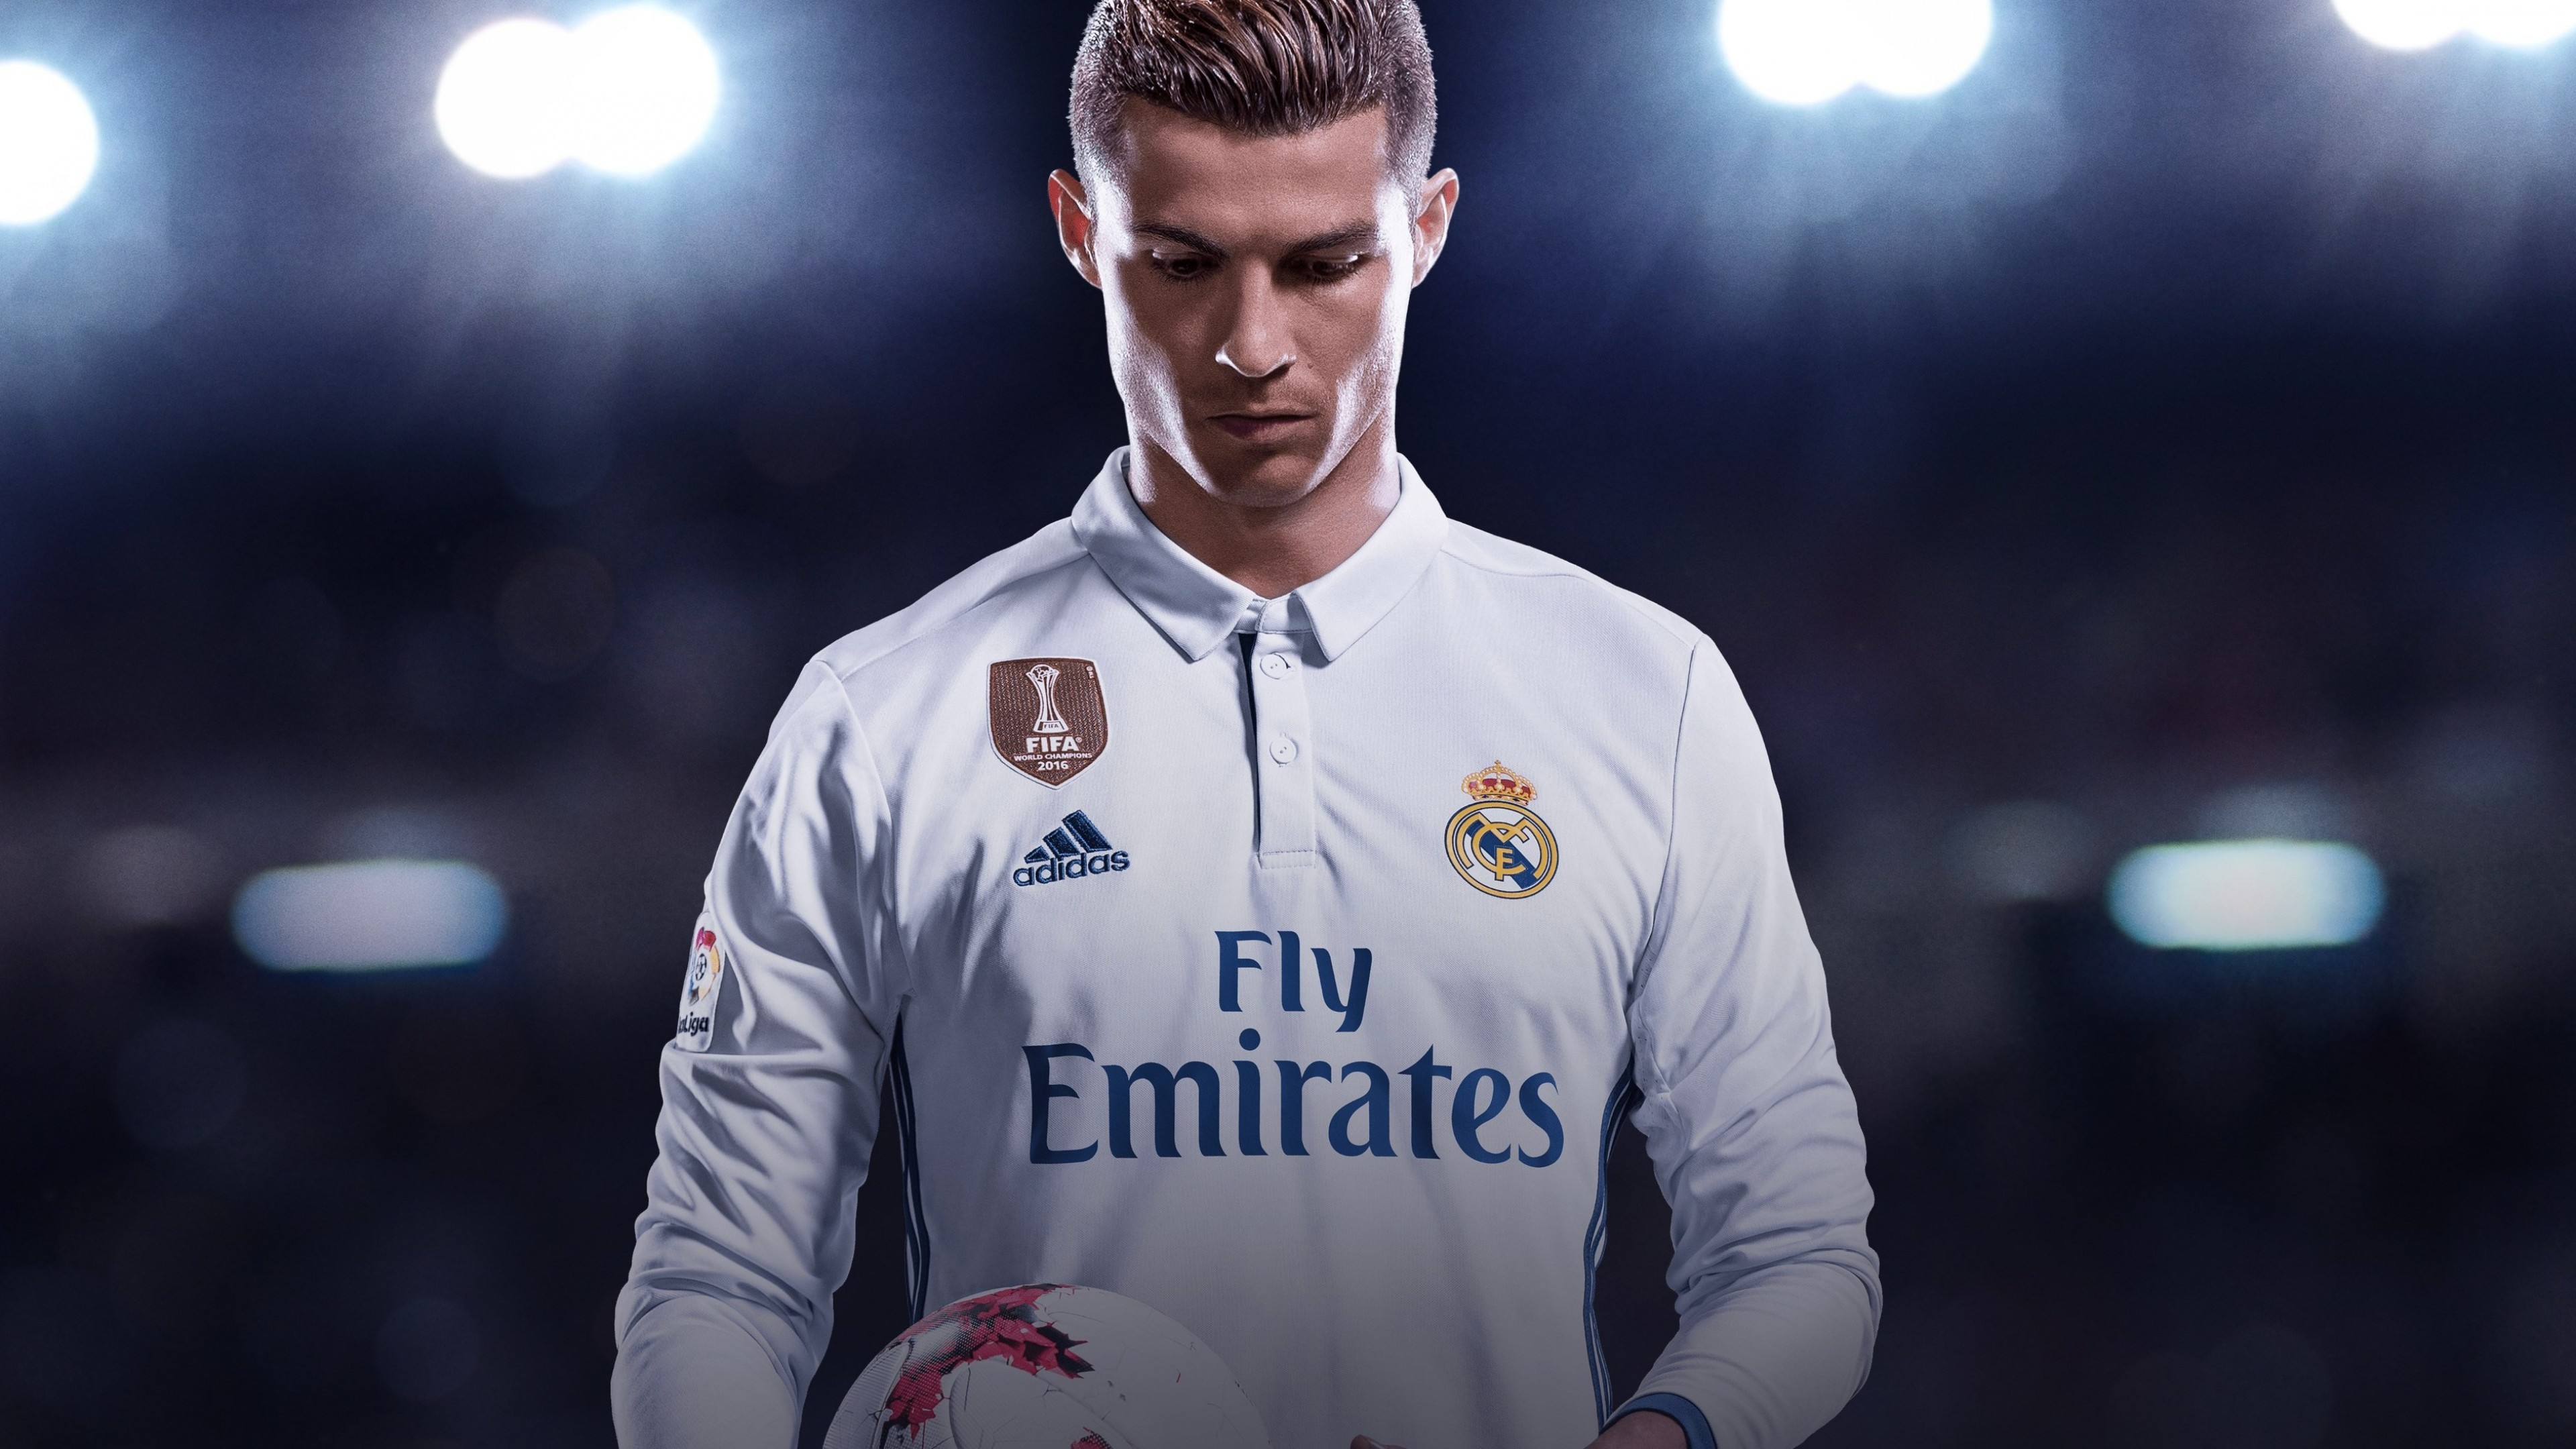 Wallpaper Cristiano Ronaldo, Portugal, Real Madrid, soccer, 4K, Sport